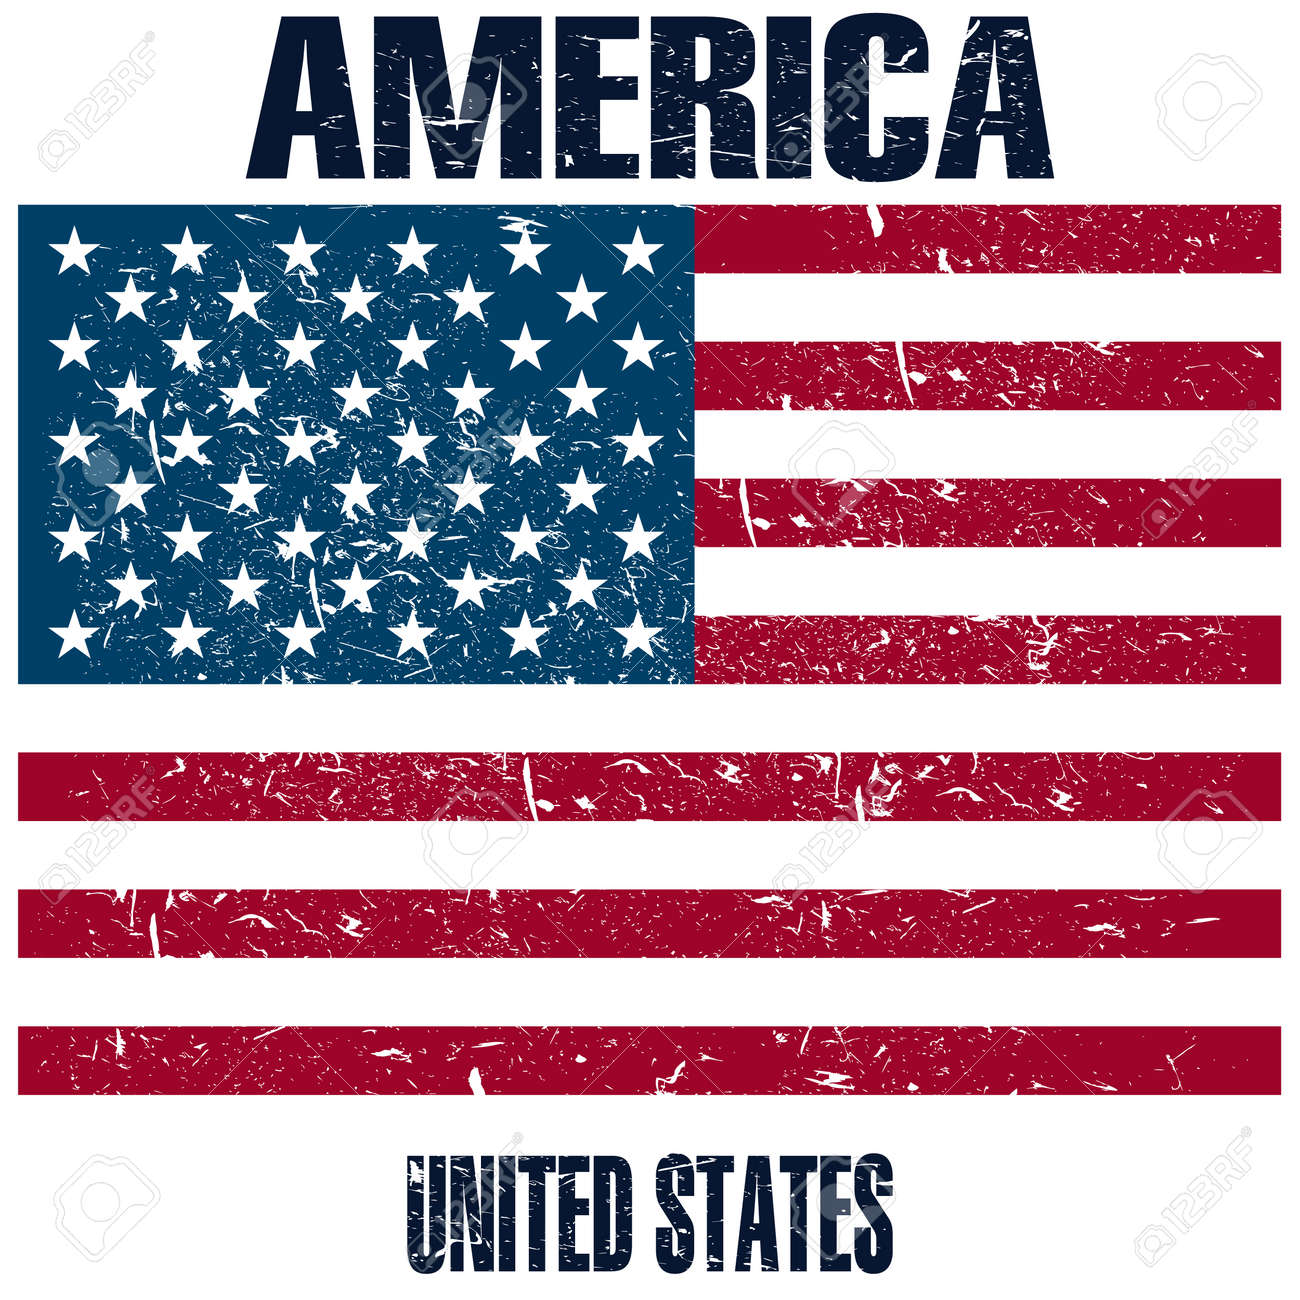 hight resolution of united states of america flag stock vector 107482372